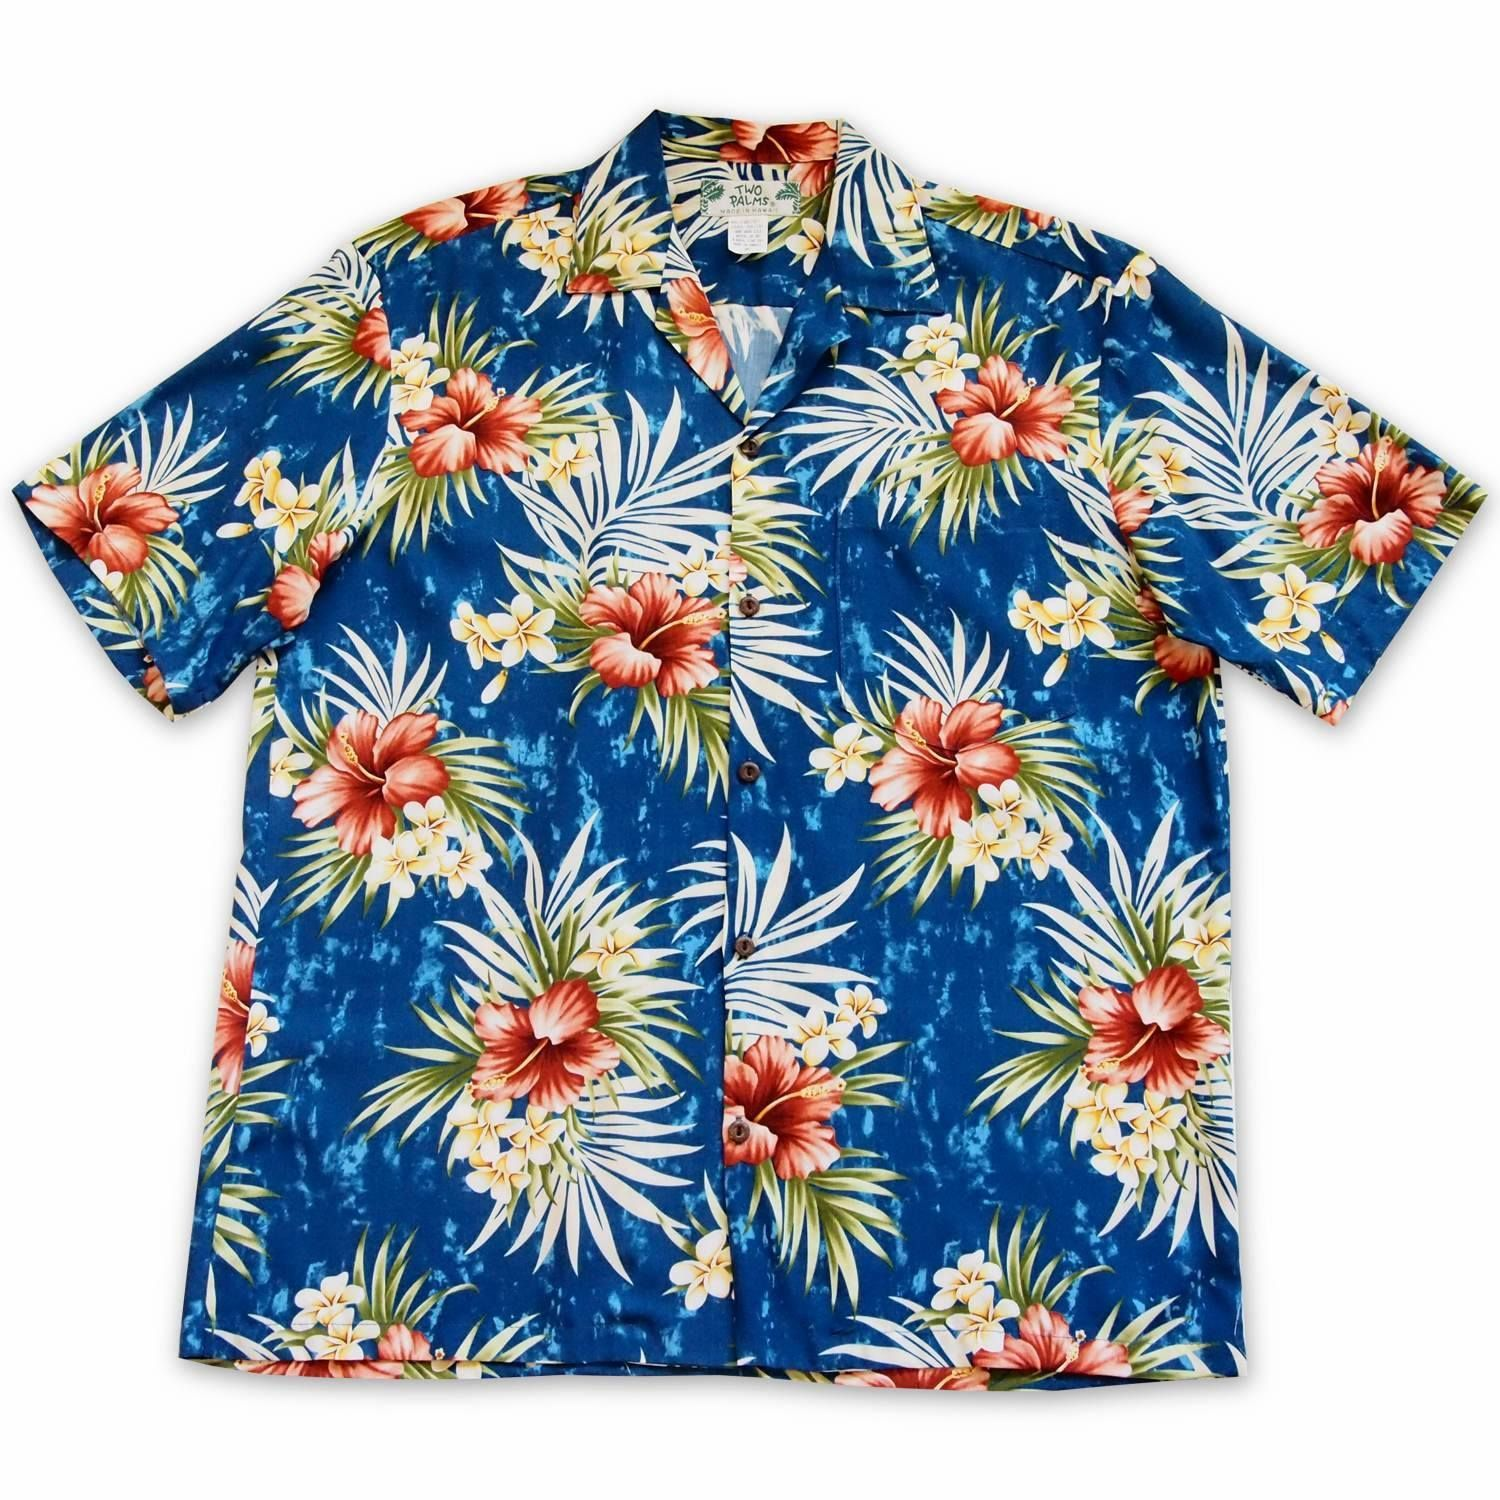 Hibiscus Isles Blue Hawaiian Rayon Shirt Blue Hawaiian Hibiscus